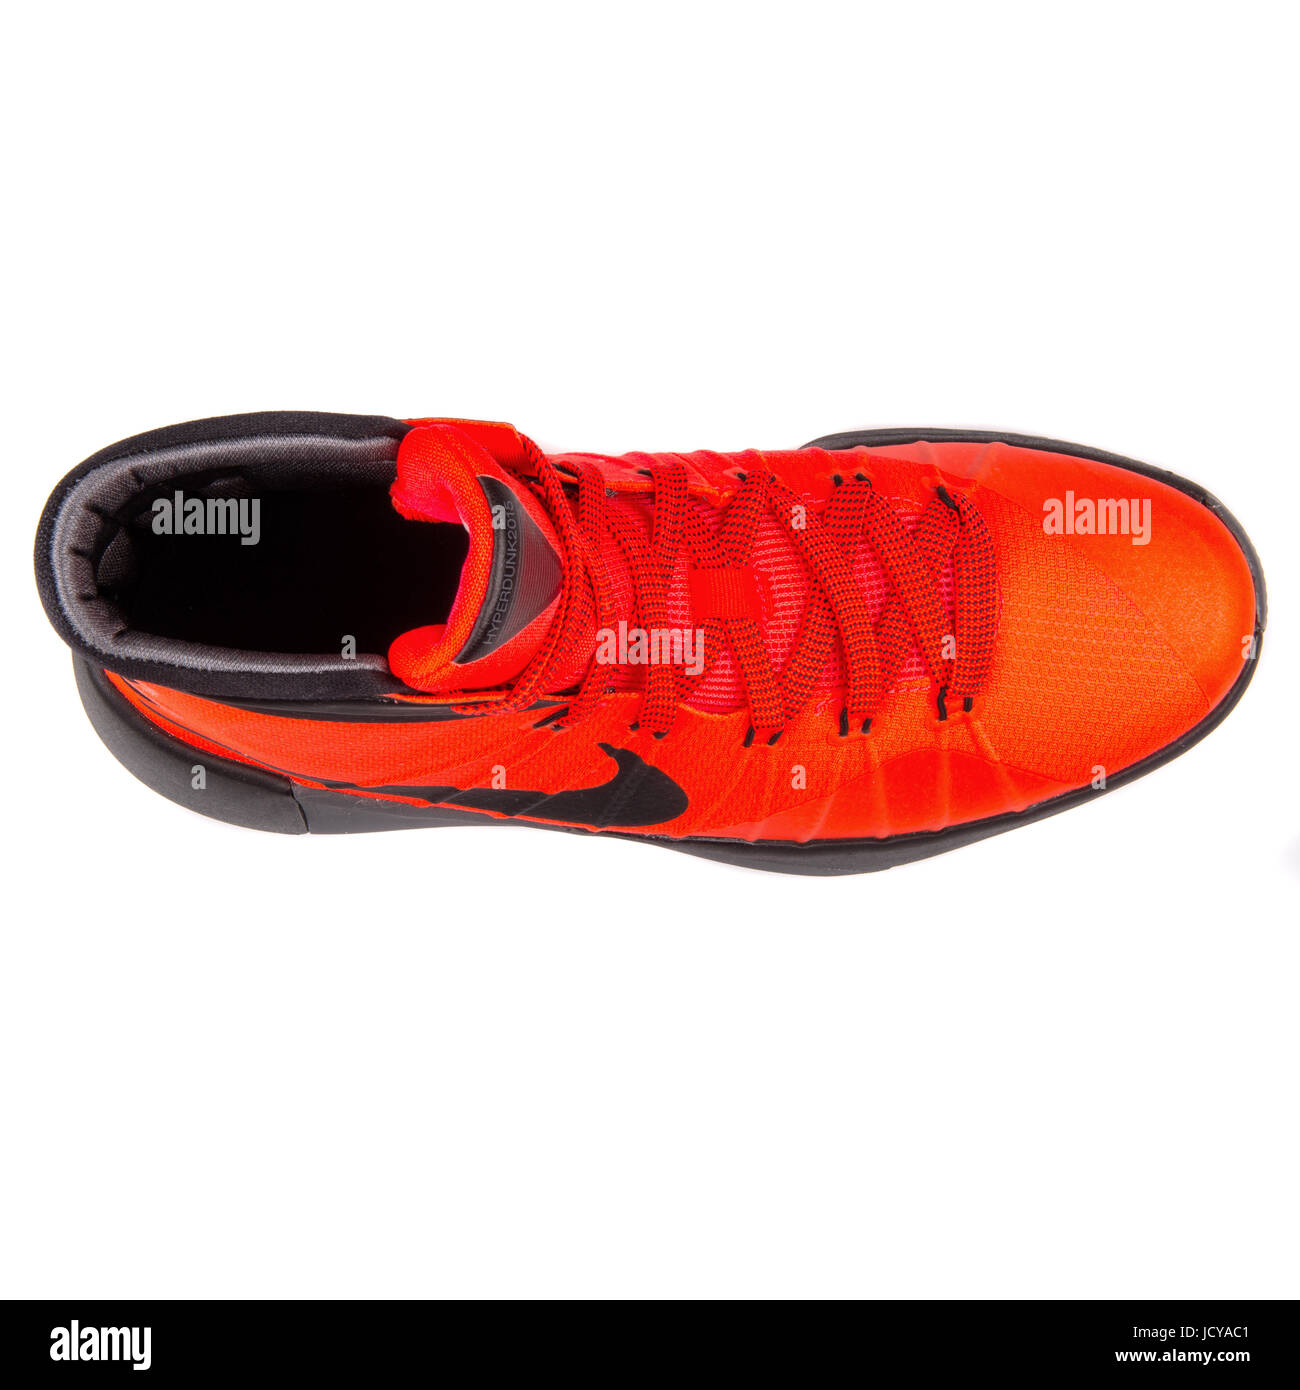 info for d9b2a 0e6bd Nike Hyperdunk 2015 (GS) Bright Crimson, Black and Grey Youth s Basketball  Shoes - 759974-600